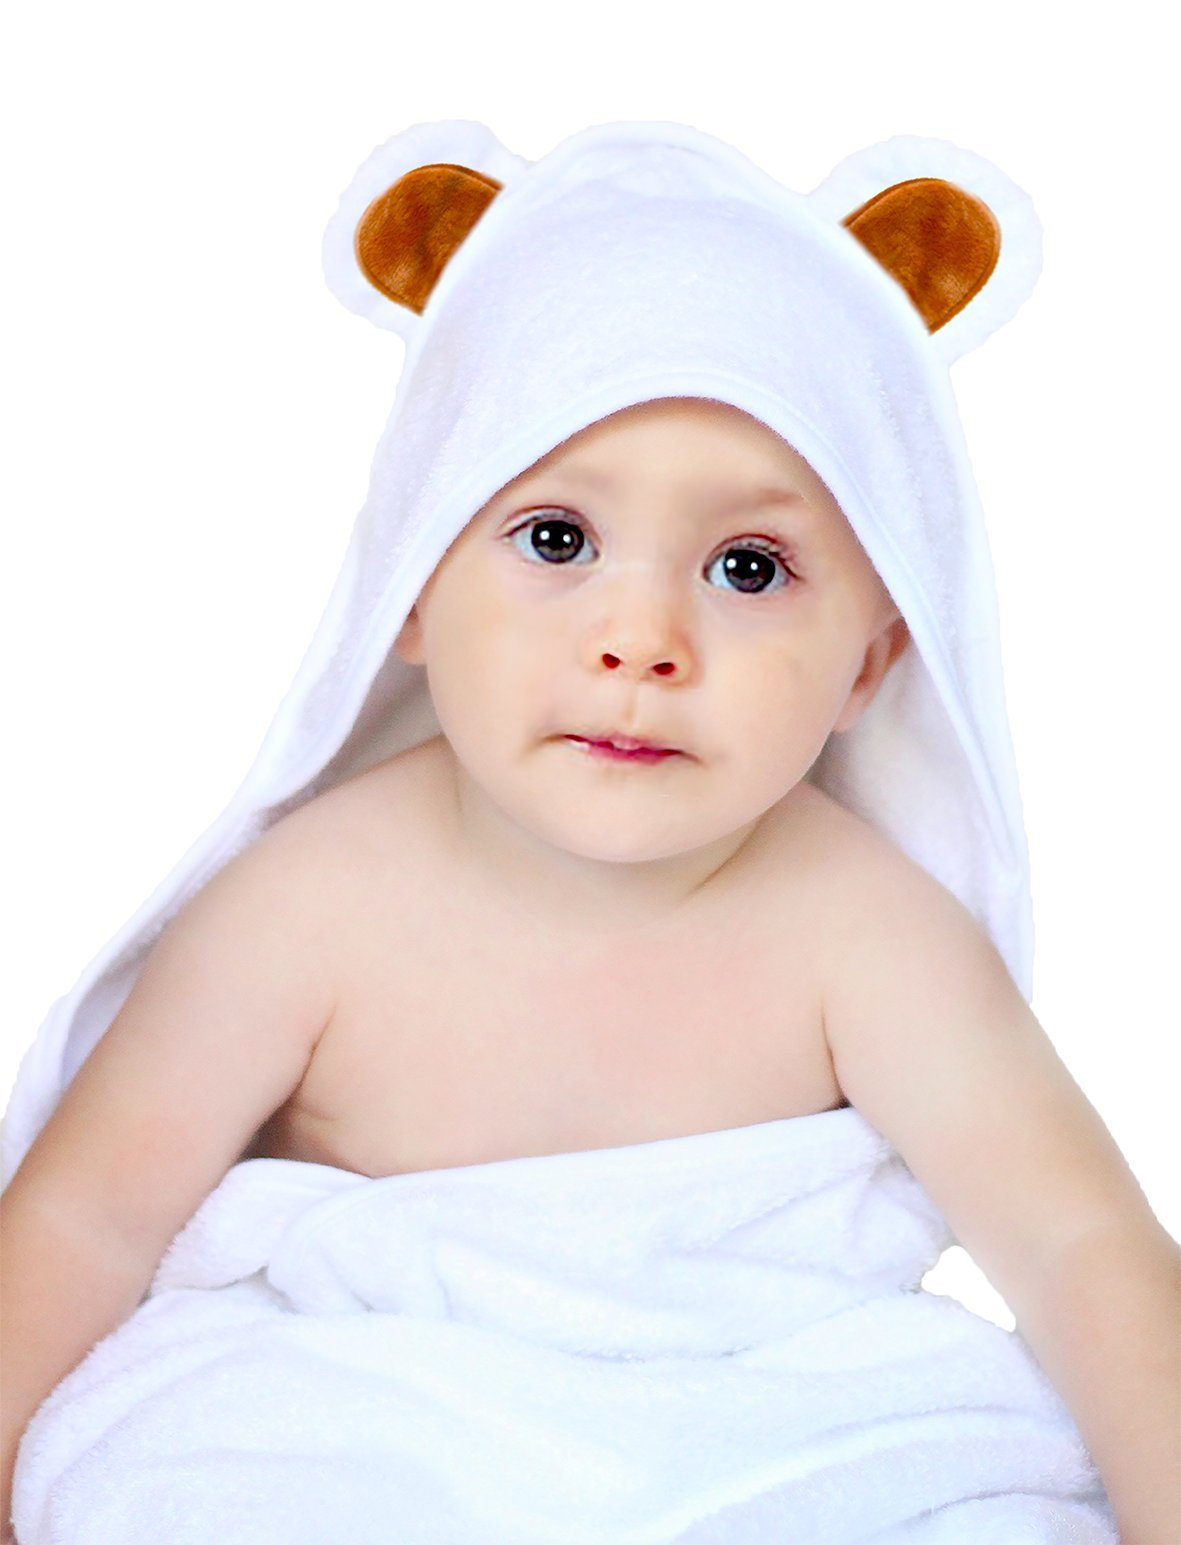 Premium Quality 100% Organic White Bamboo Baby Hooded Bath Towel By Lucid Top – Bathrobe With Hood For Babies & Infants – Non-toxic & Hypoallergenic – Bonus Set Of 2 Washcloths Included